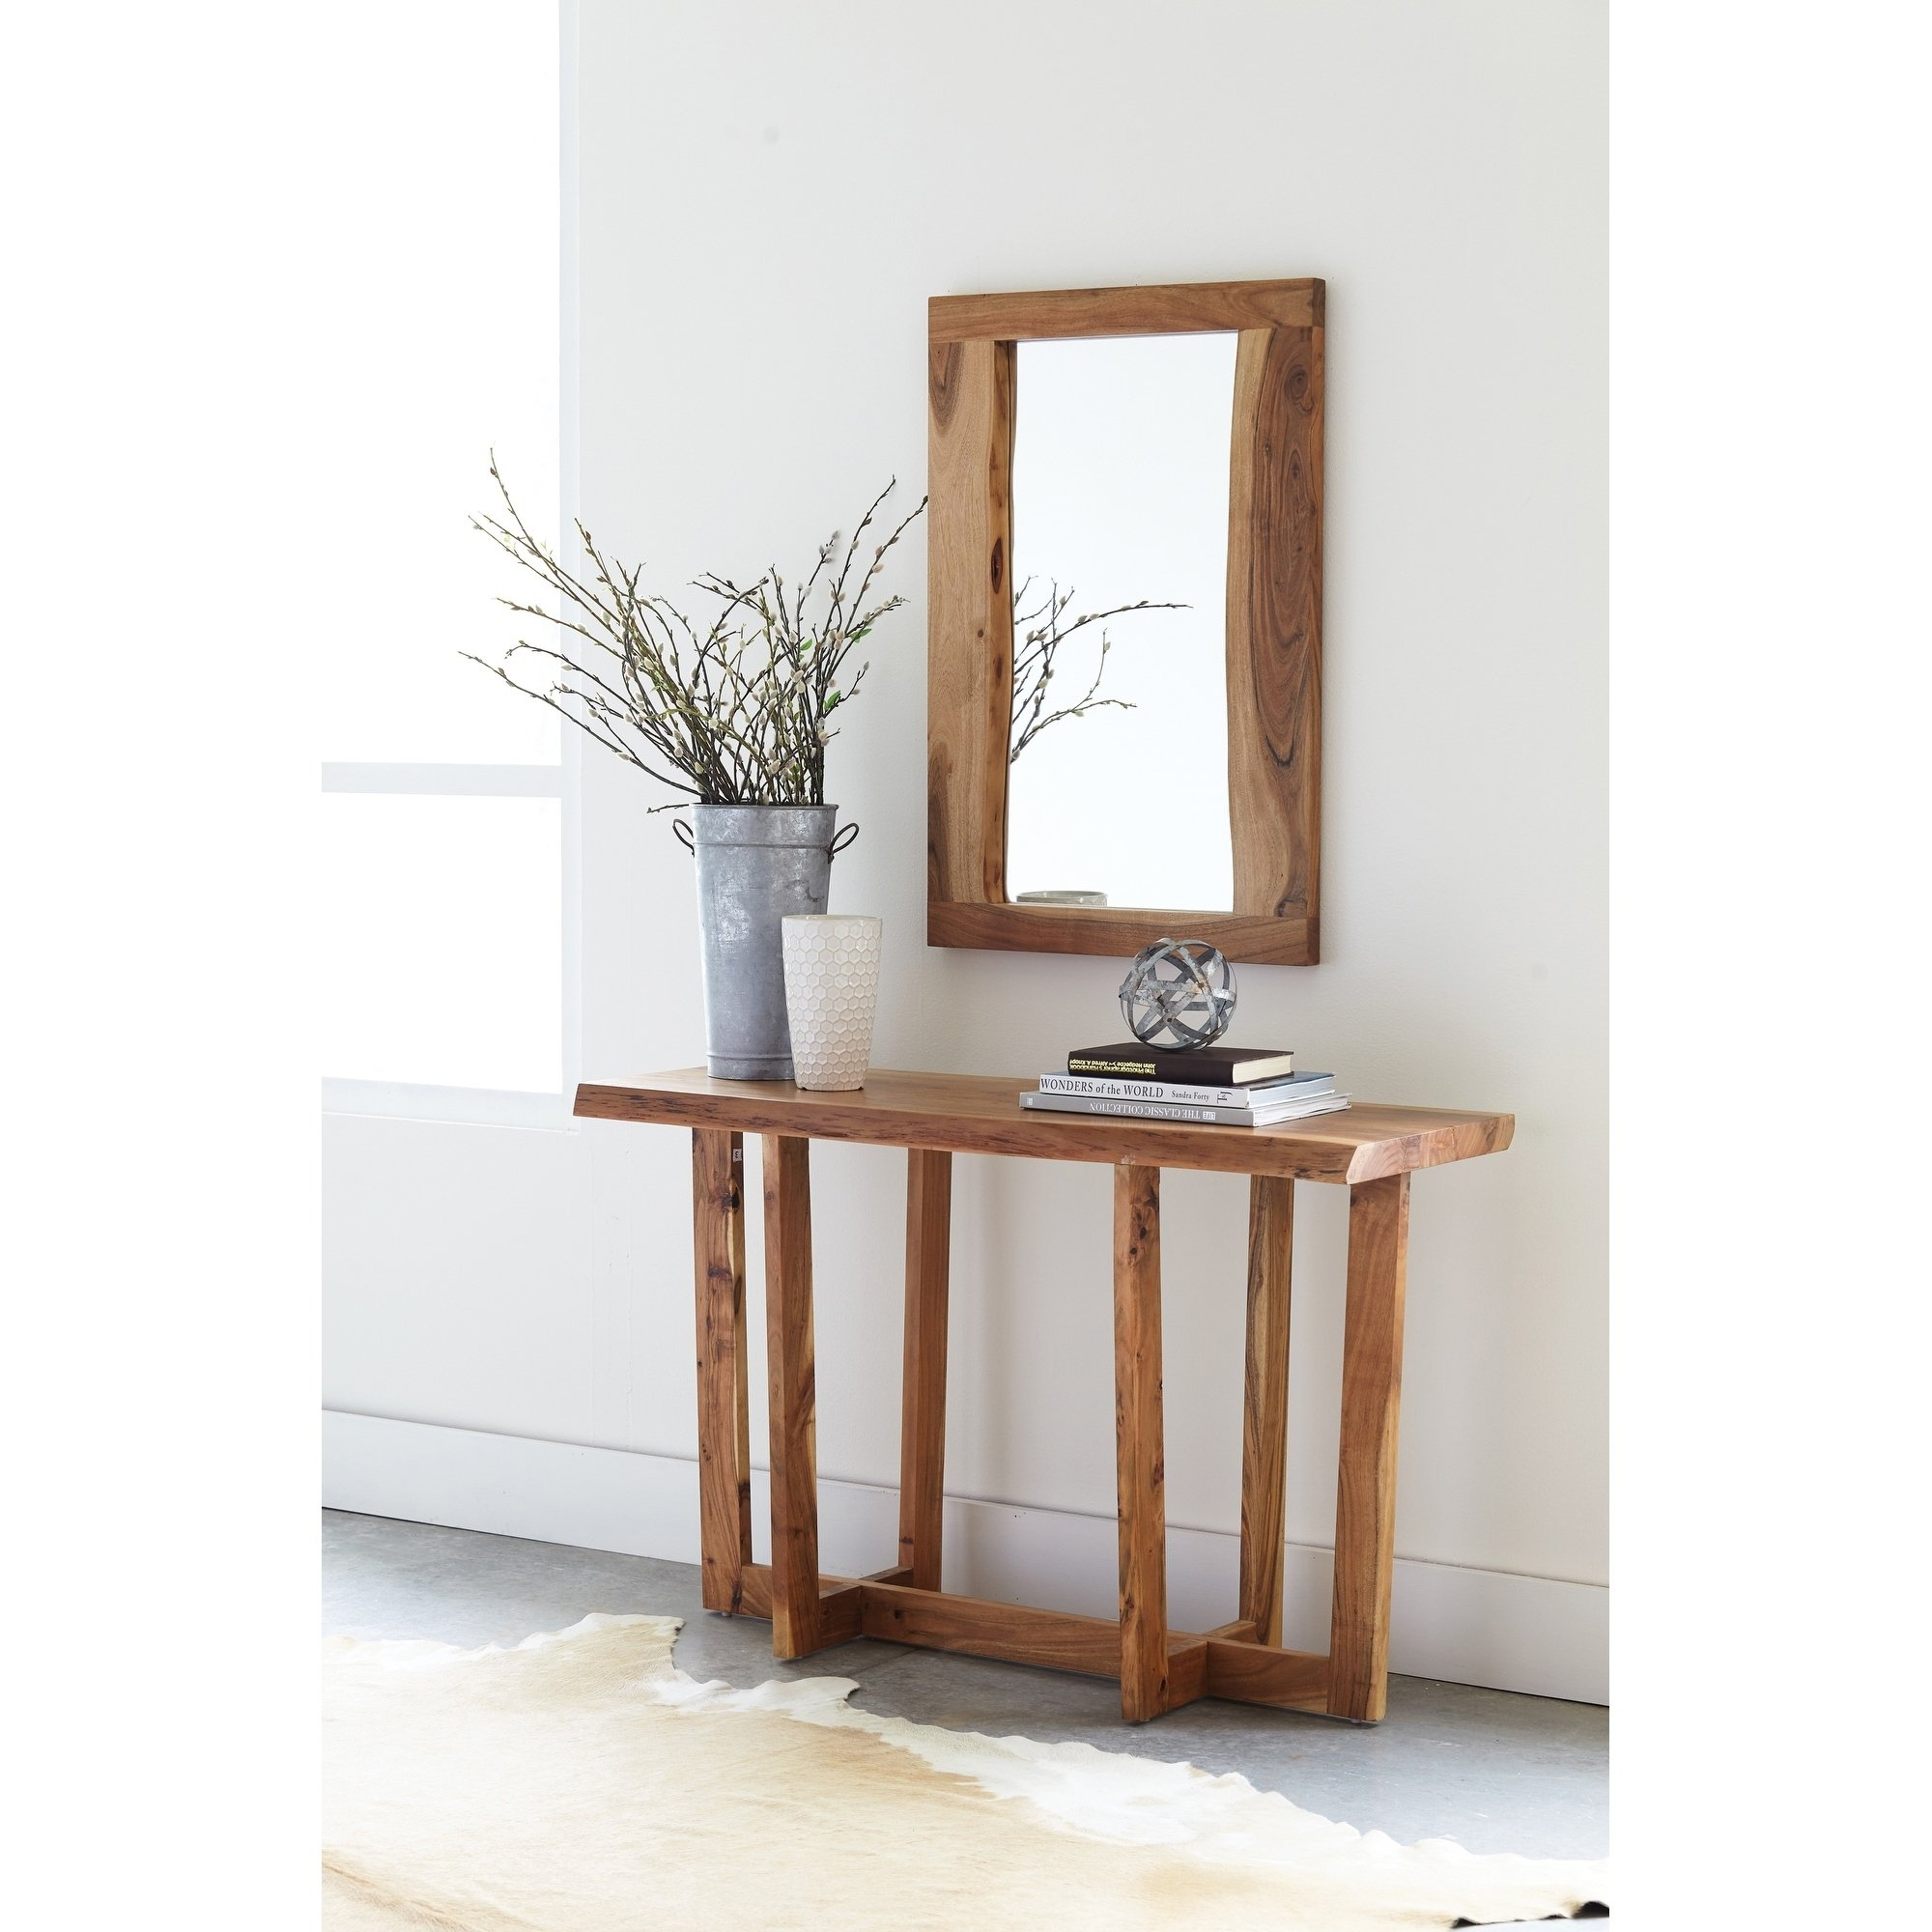 Shop Berkshire Natural Live Edge Wood Media Console Table, Natural within Natural Wood Mirrored Media Console Tables (Image 24 of 30)